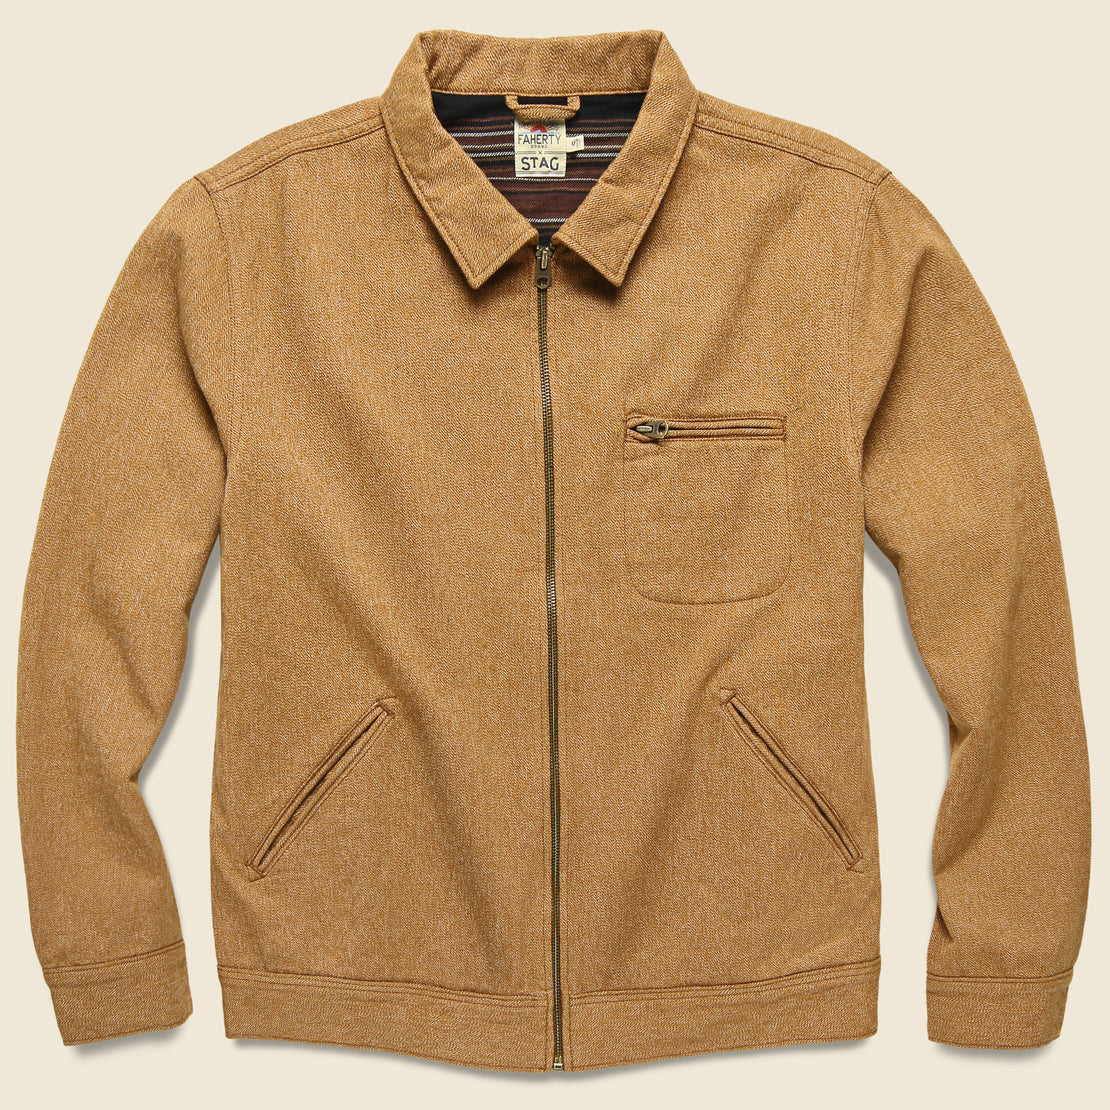 Faherty Asbury Jacket - Saddle Brown